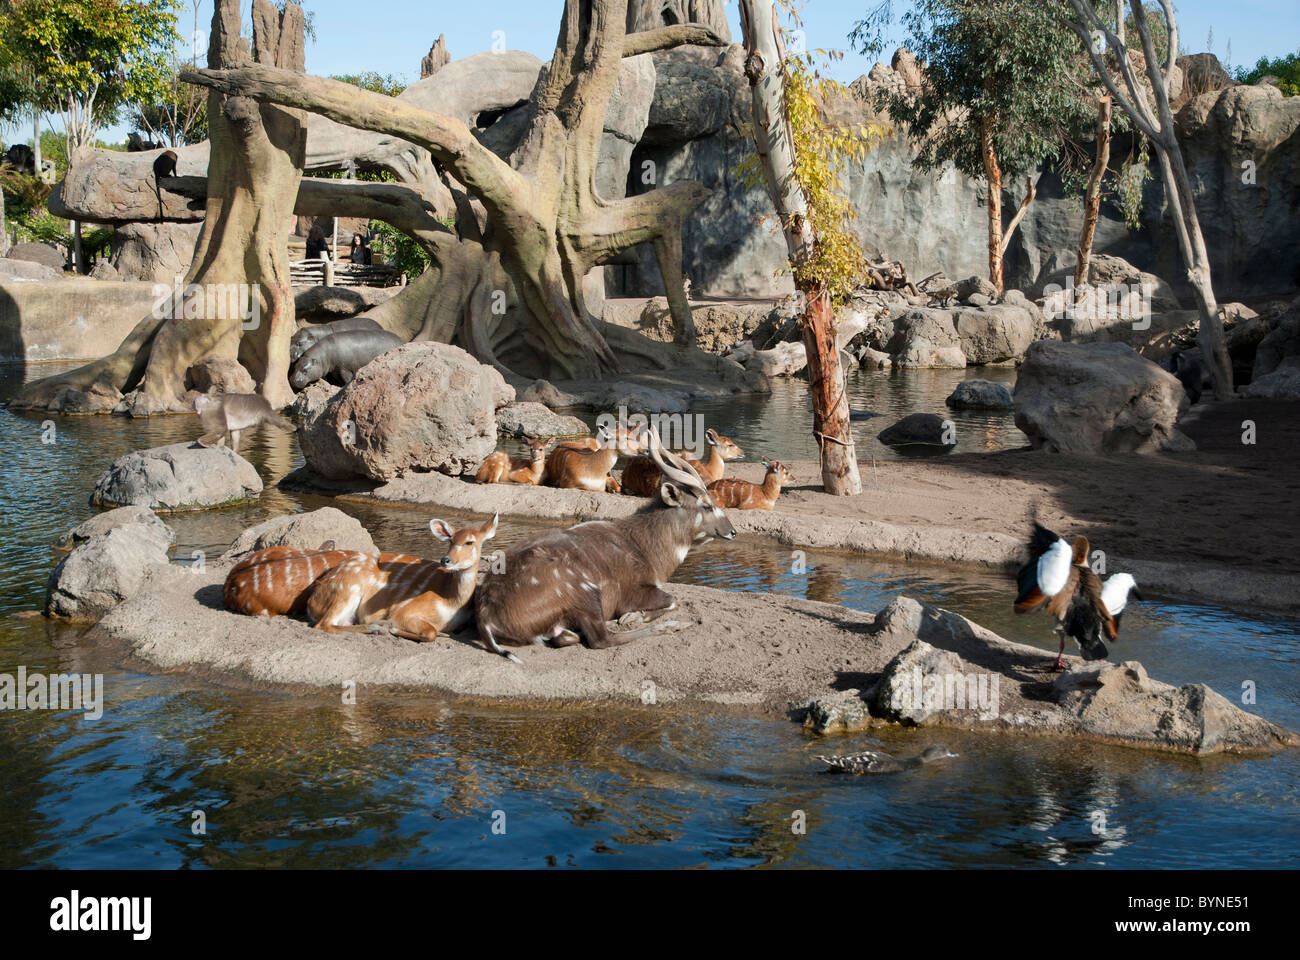 Bioparc Valencia spain zoo animals biopark Stock Photo, Royalty Free Image: 3...